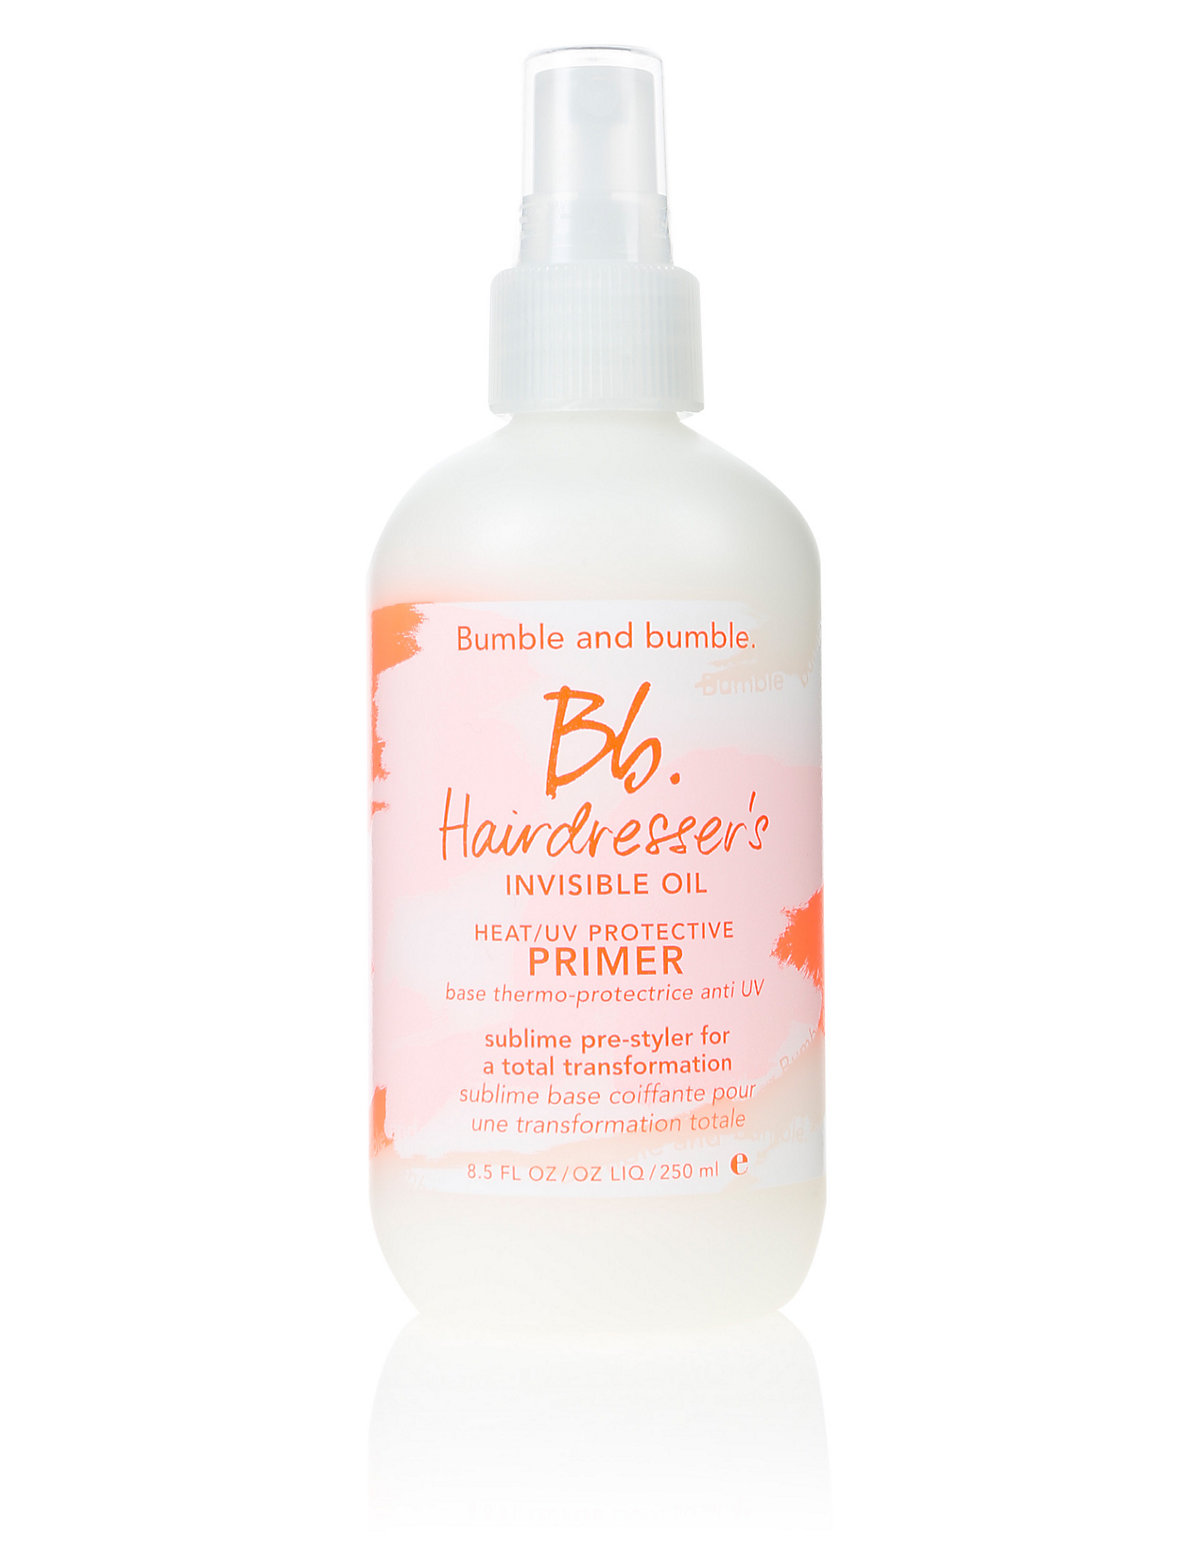 Bumble and bumble Hairdresser's Invisible Oil Primer 250ml